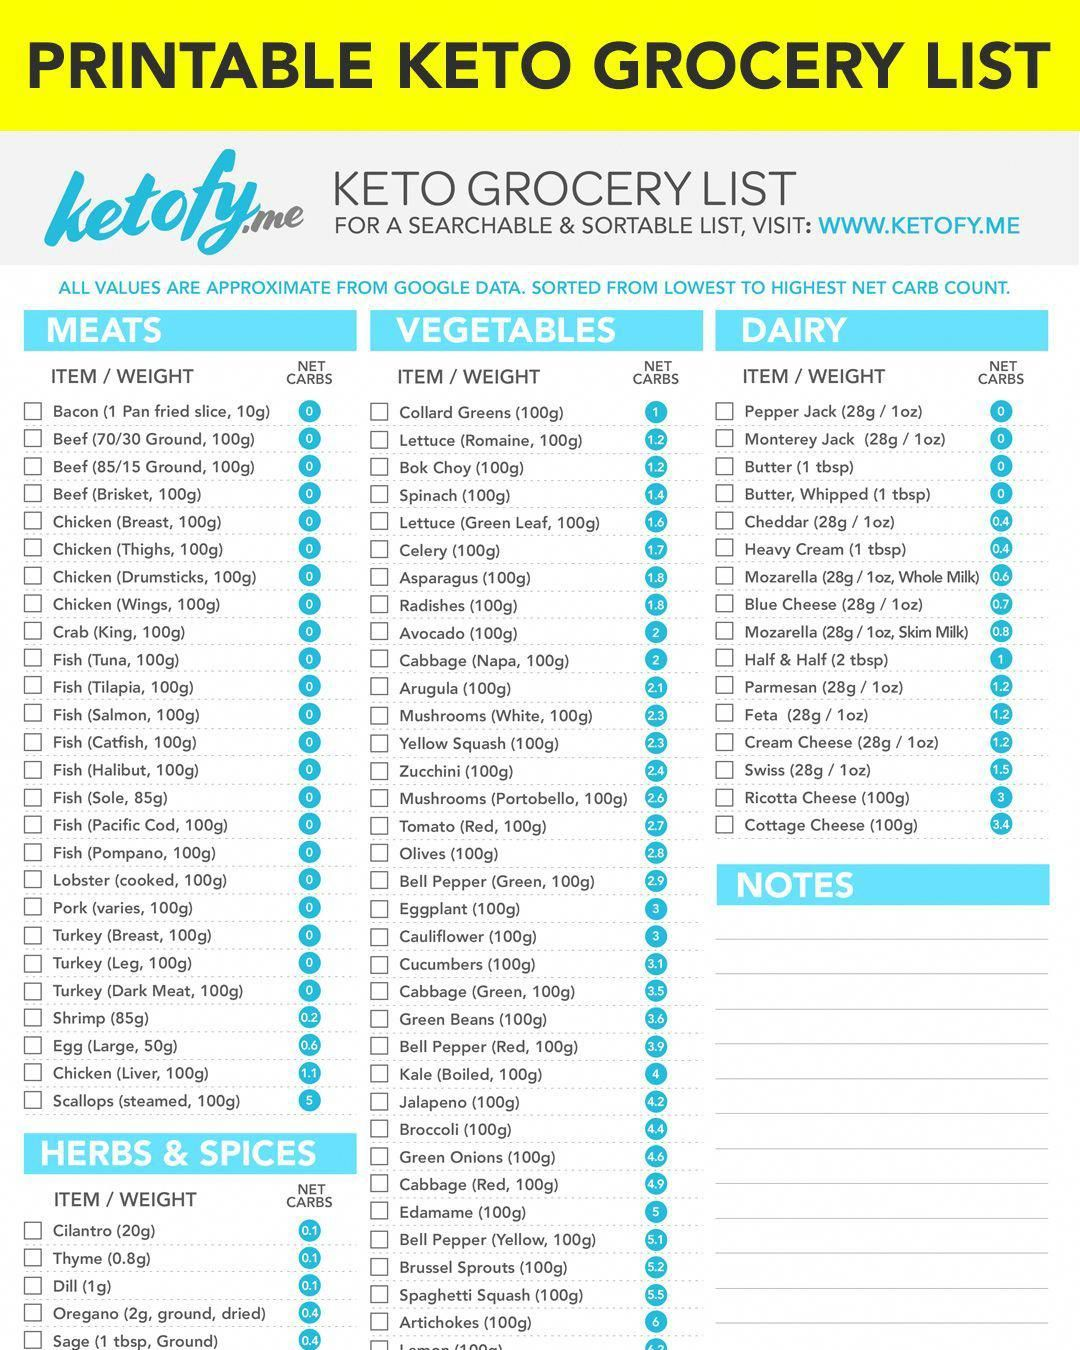 Keto Results Keto Grocery List with Net Carbs Printable